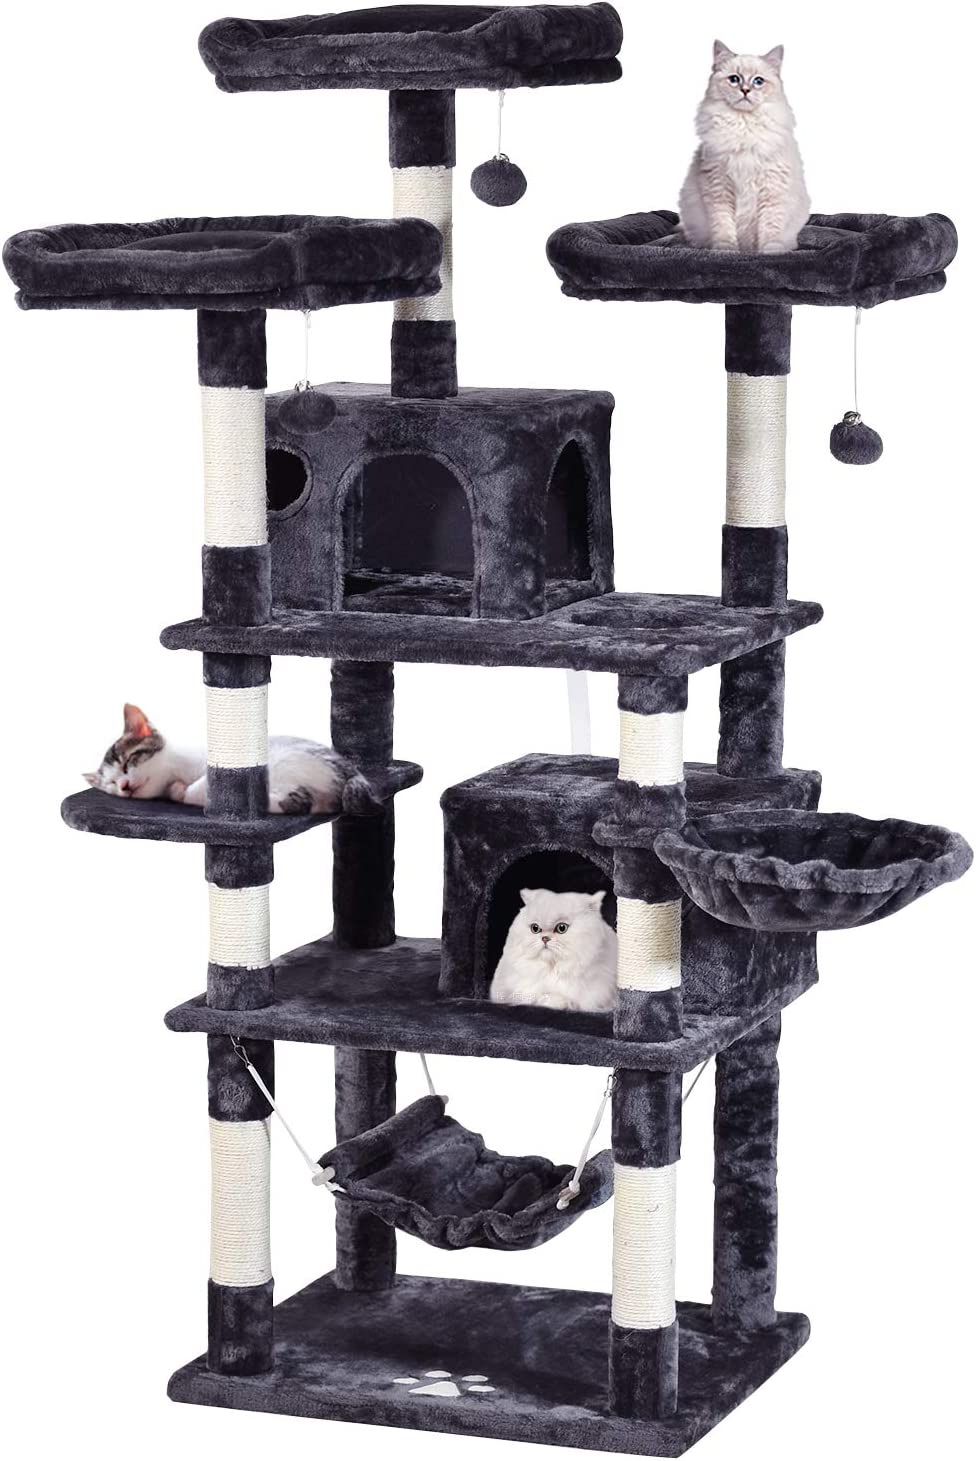 MQ Multi-Level Cat Tree, Activity Cat Tower Furniture with Sisal-Covered Scratching Post 3 Padded Plush Perches Dual Condo & Basket Removable Hammock for Large Small Cat(Gray/Smoky Gray)